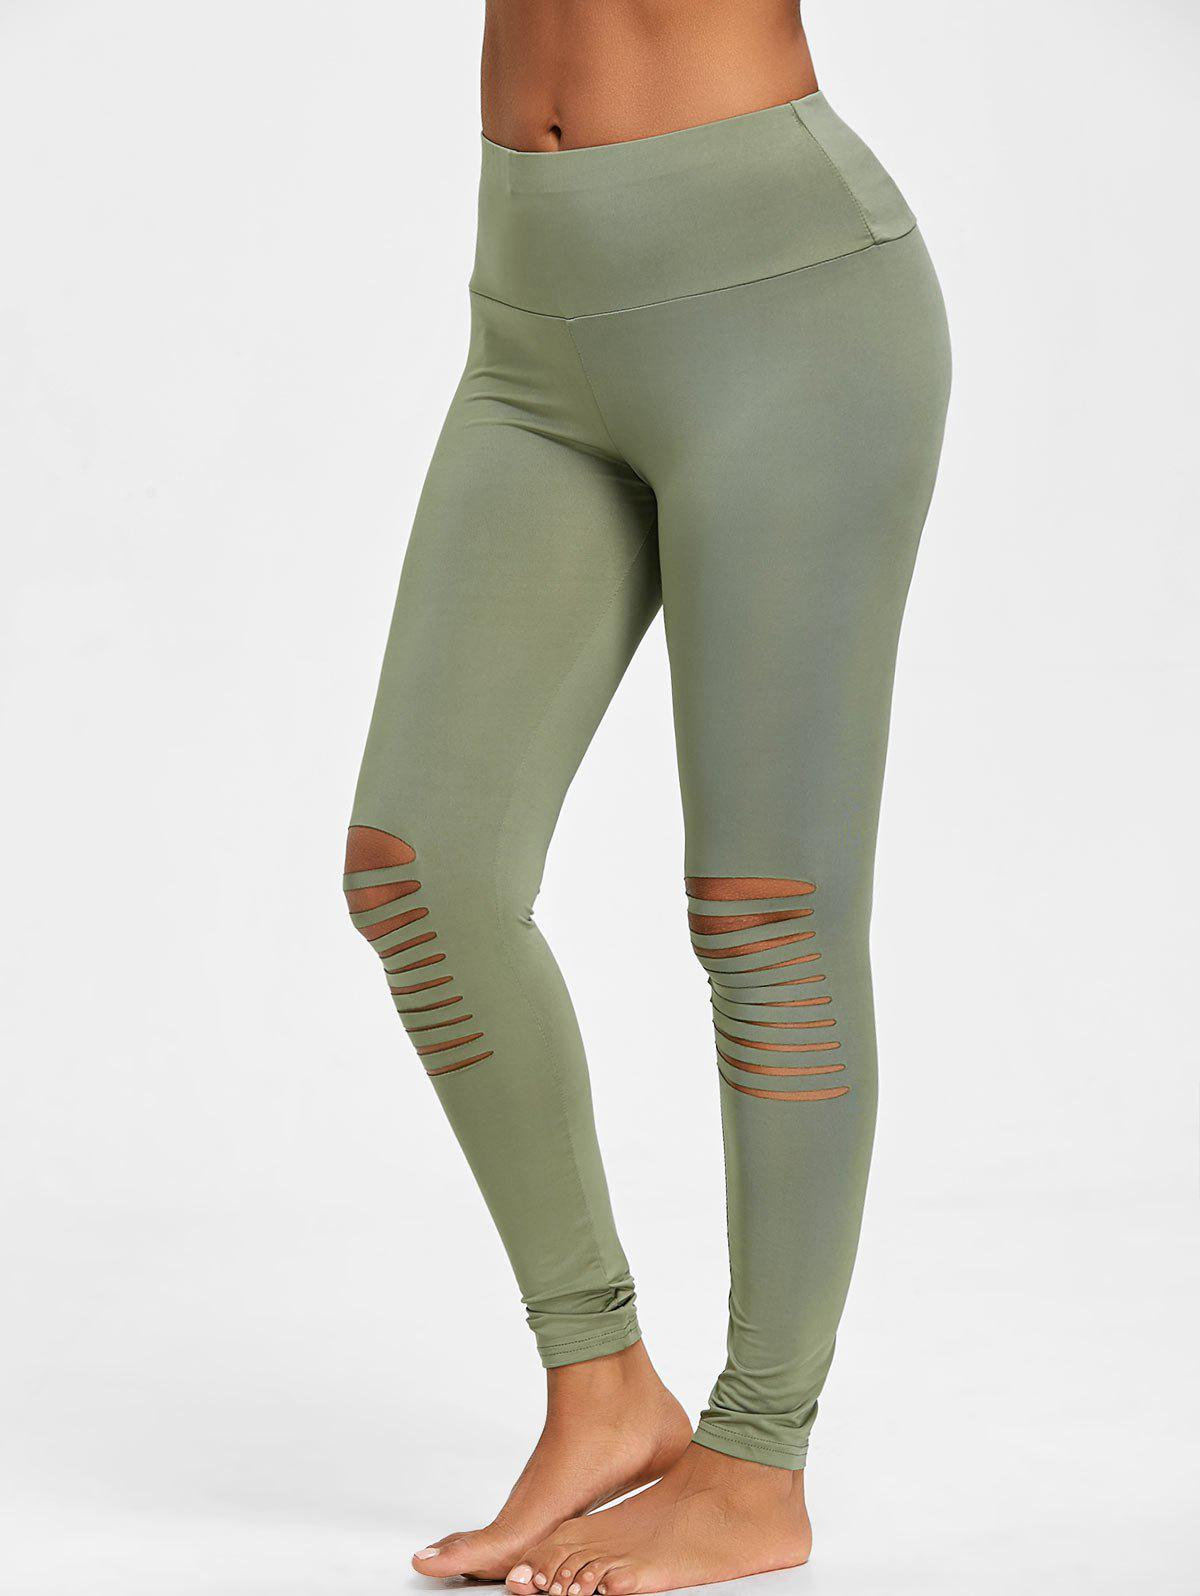 Skinny High Waist Knee Ripped Leggings - GREEN XL